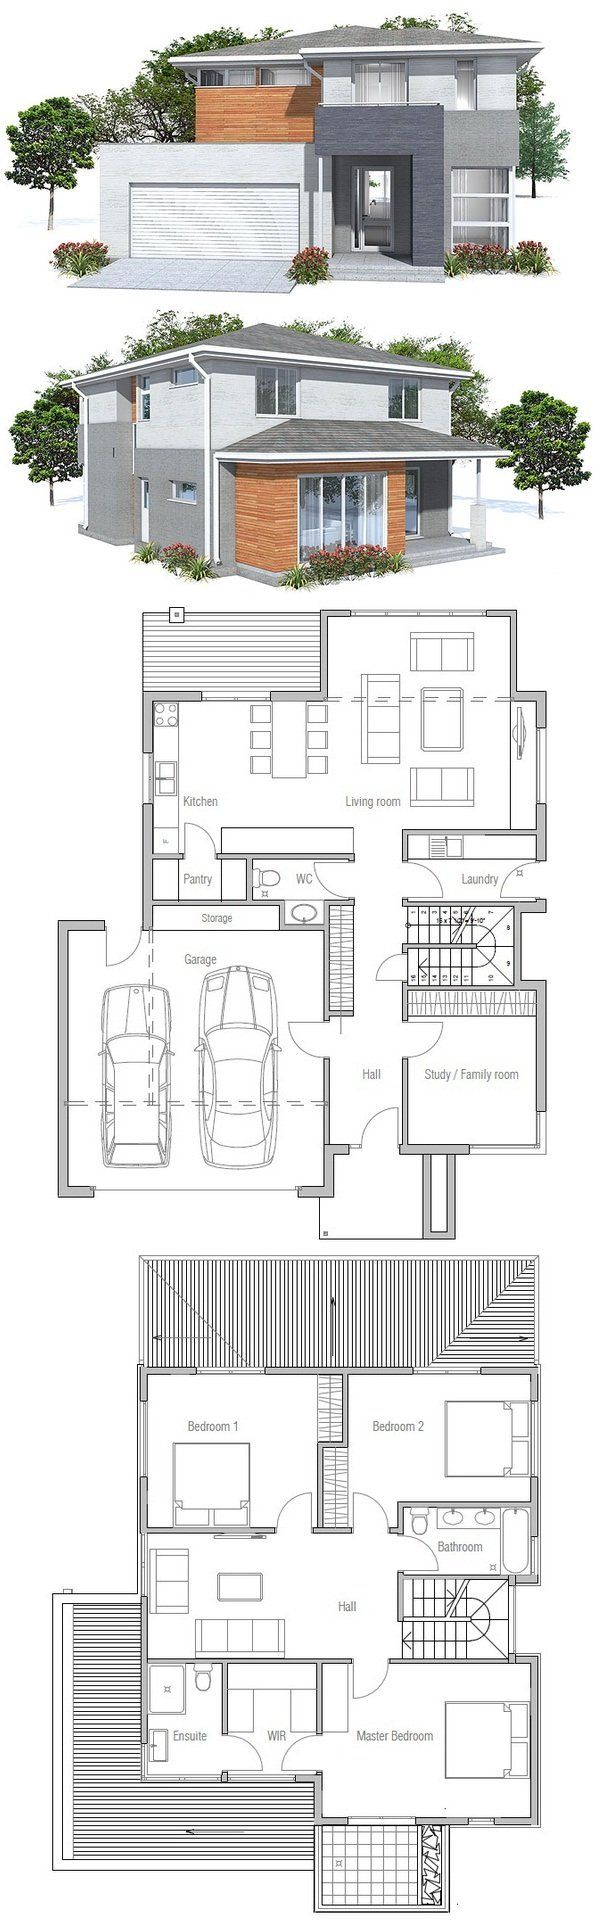 Duplex fourplex plans a collection of ideas to try about for Contemporary duplex plans